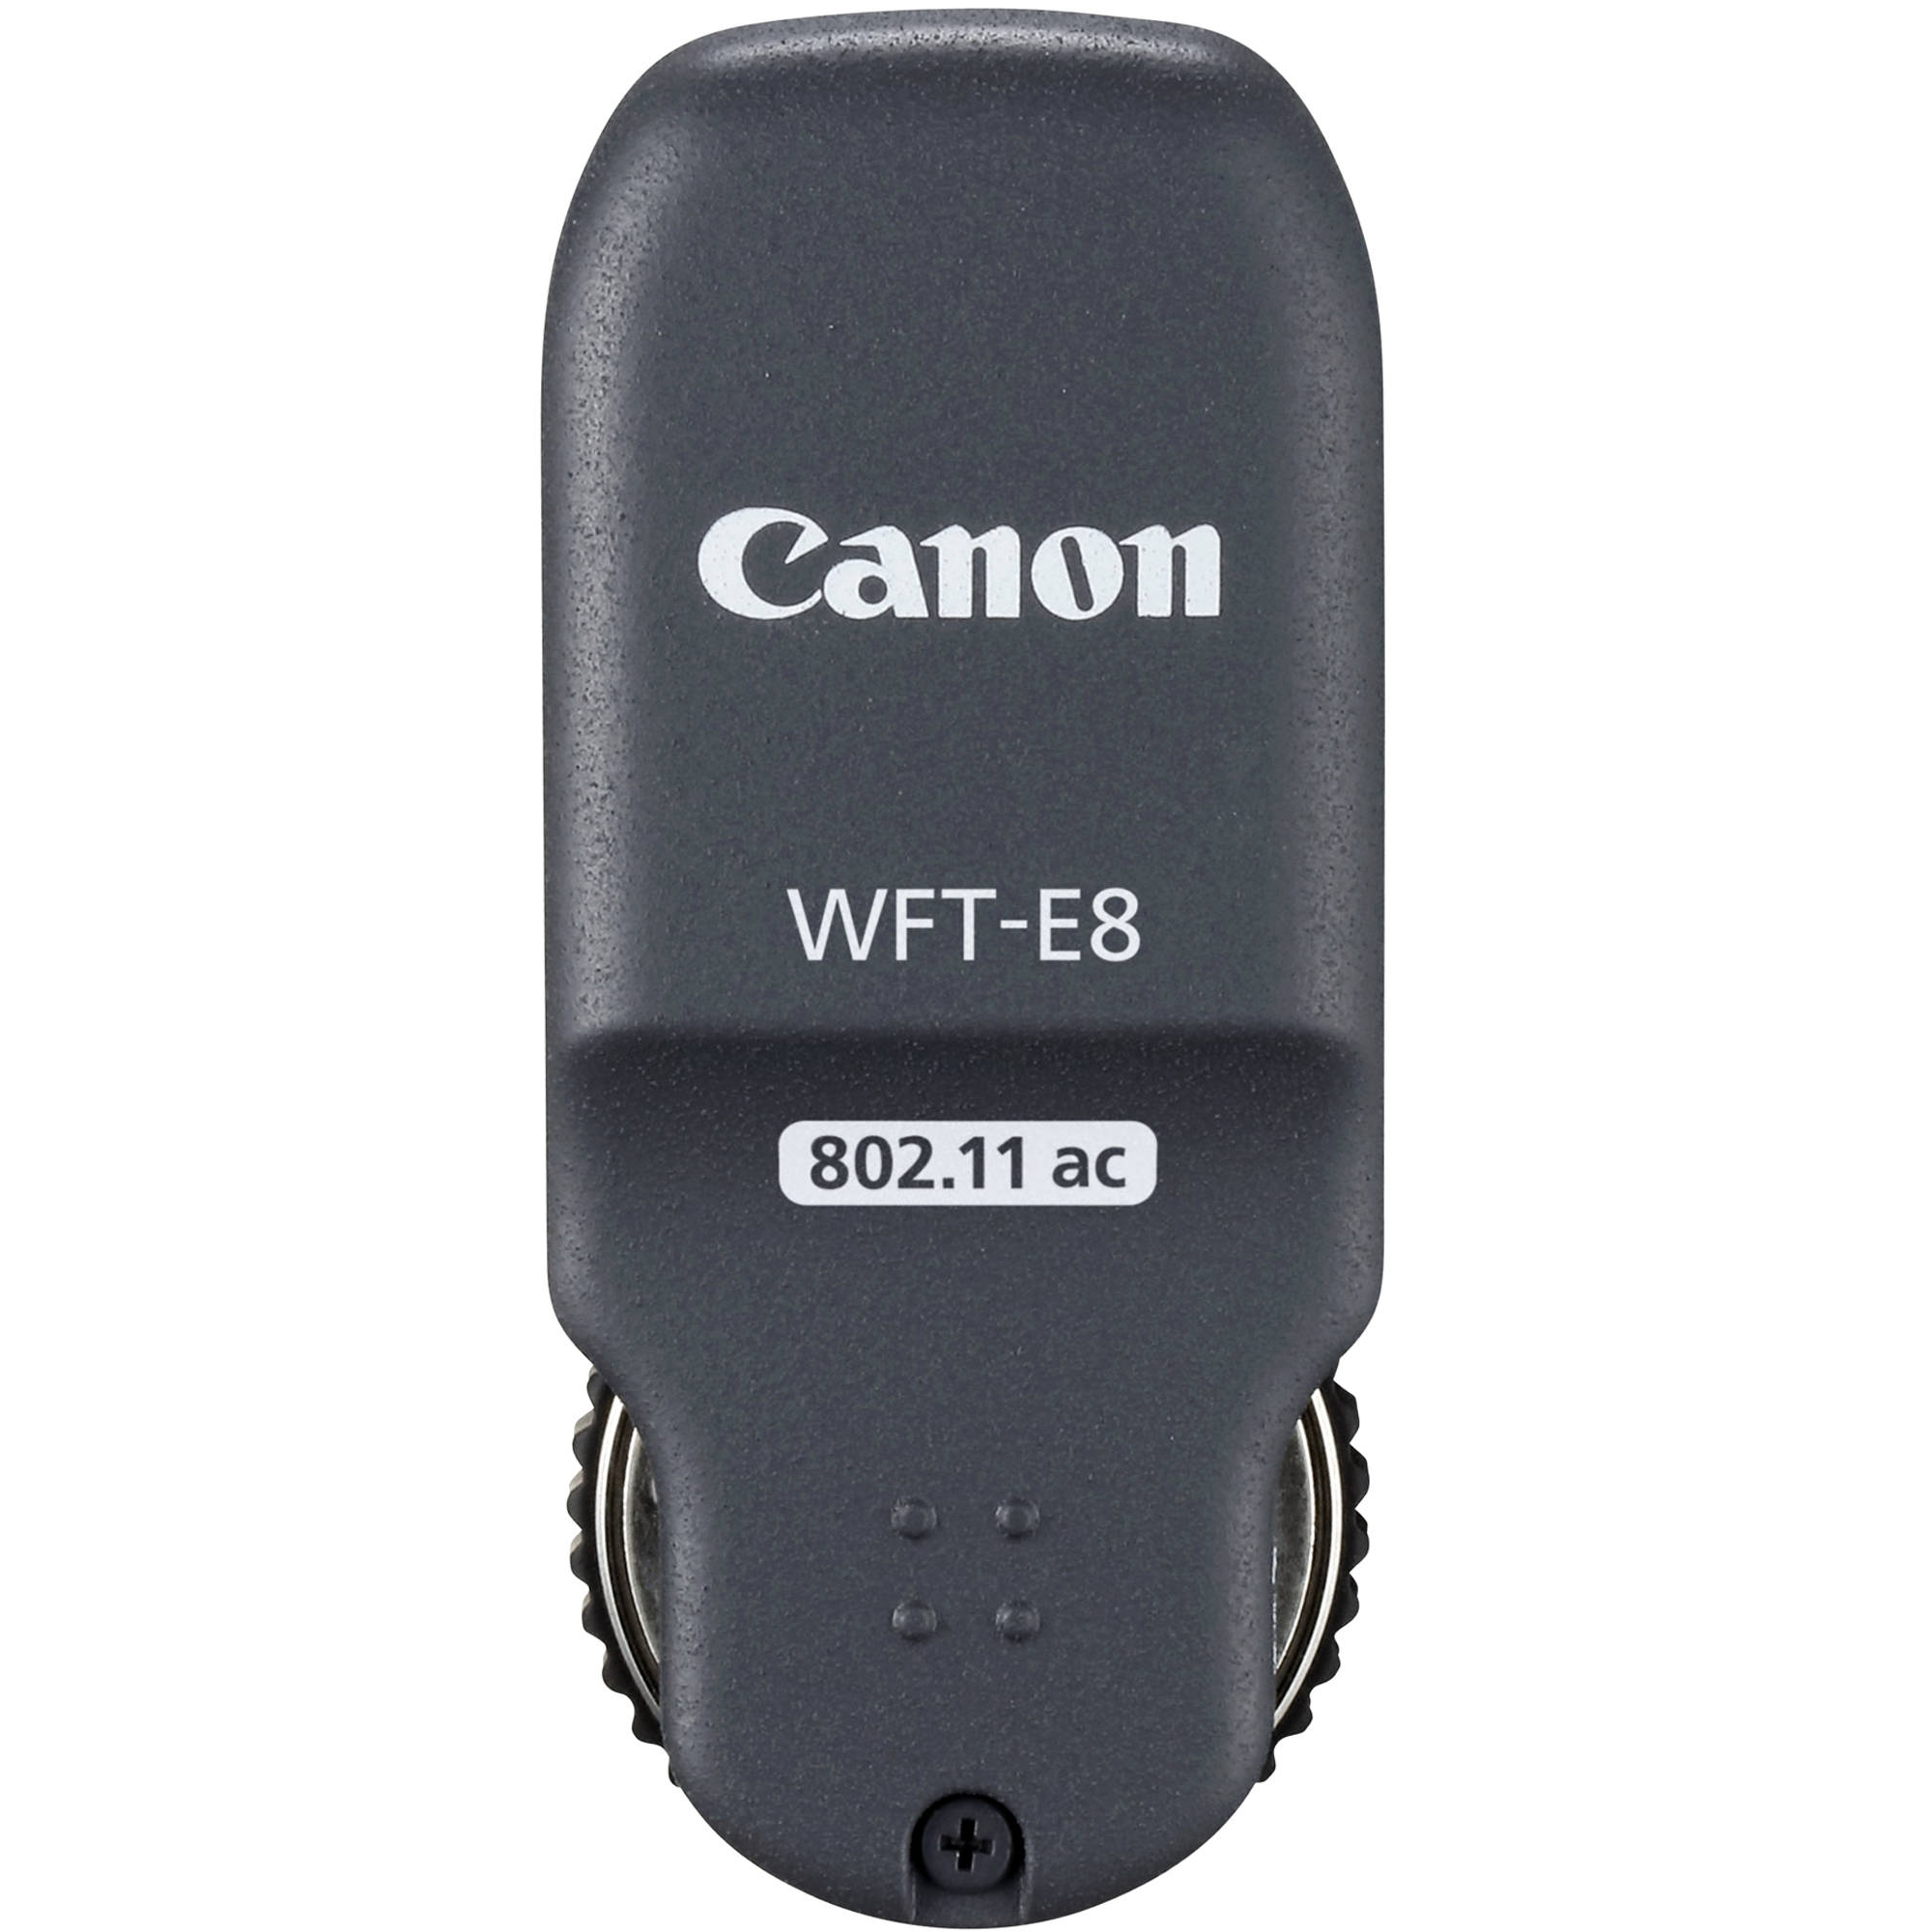 Беспроводной передатчик CANON WFT-E8B Wireless File Transmitter для EOS-1D X Mark II фото